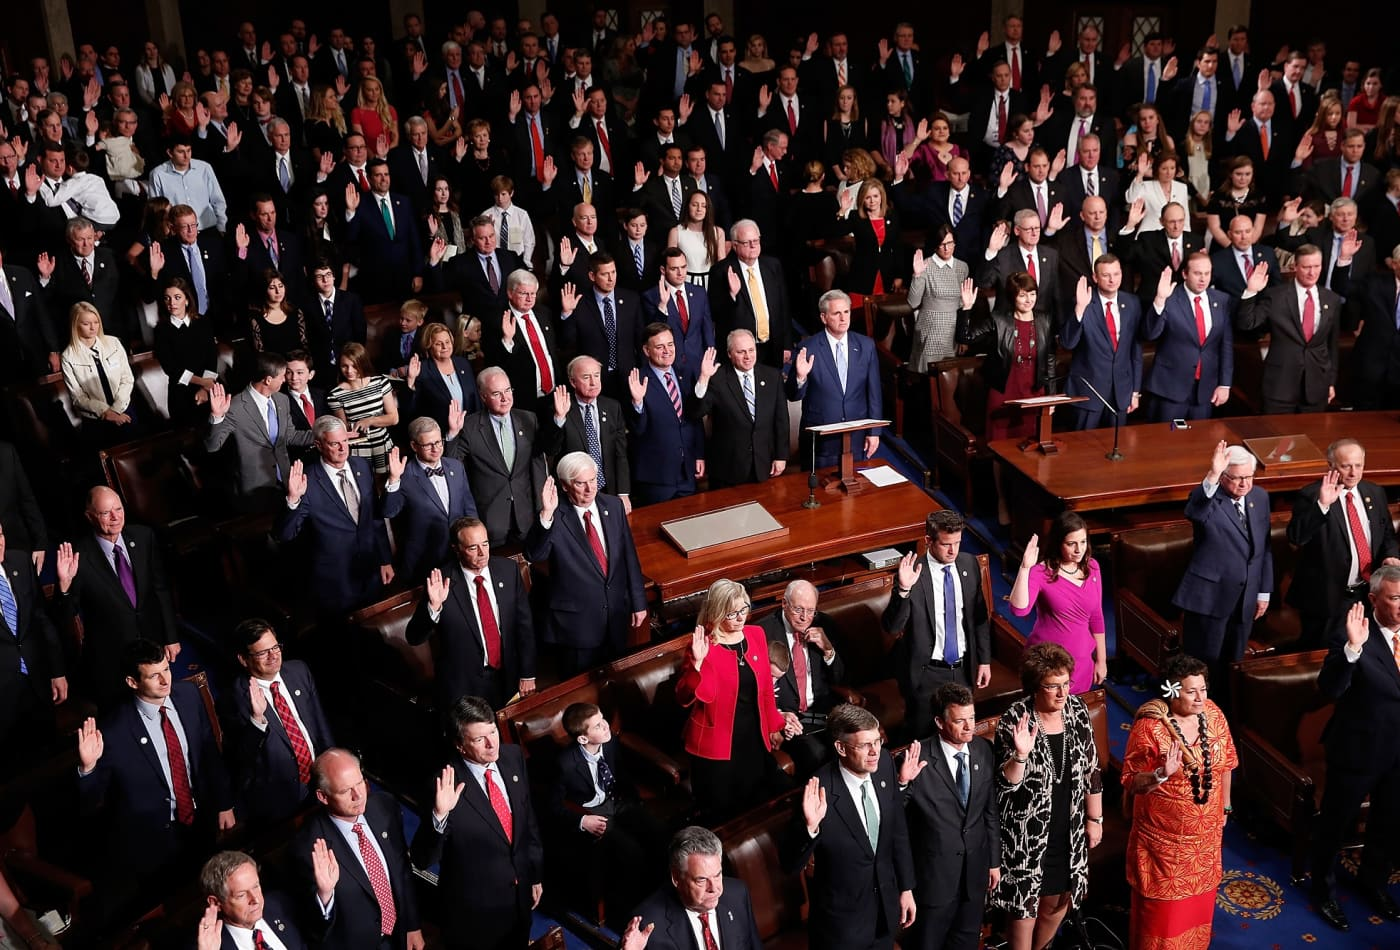 United States Representatives with hands up